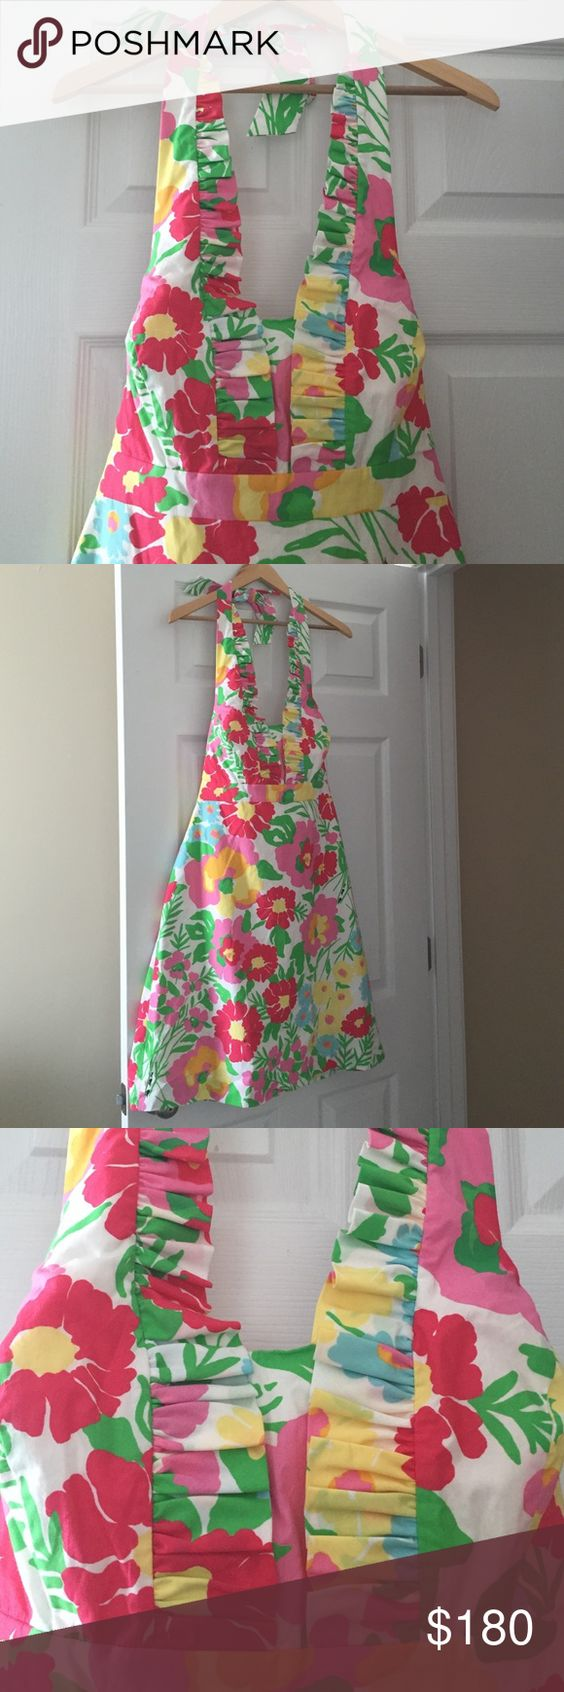 Lilly halter dress Fun flower print Lilly halter dress. This is a structured halter with full lining and back hidden zipper. Ruffle detail on the front chest area up to the halter tie. Never worn. Size 10 but fits 6-10 Lilly Pulitzer Dresses Mini